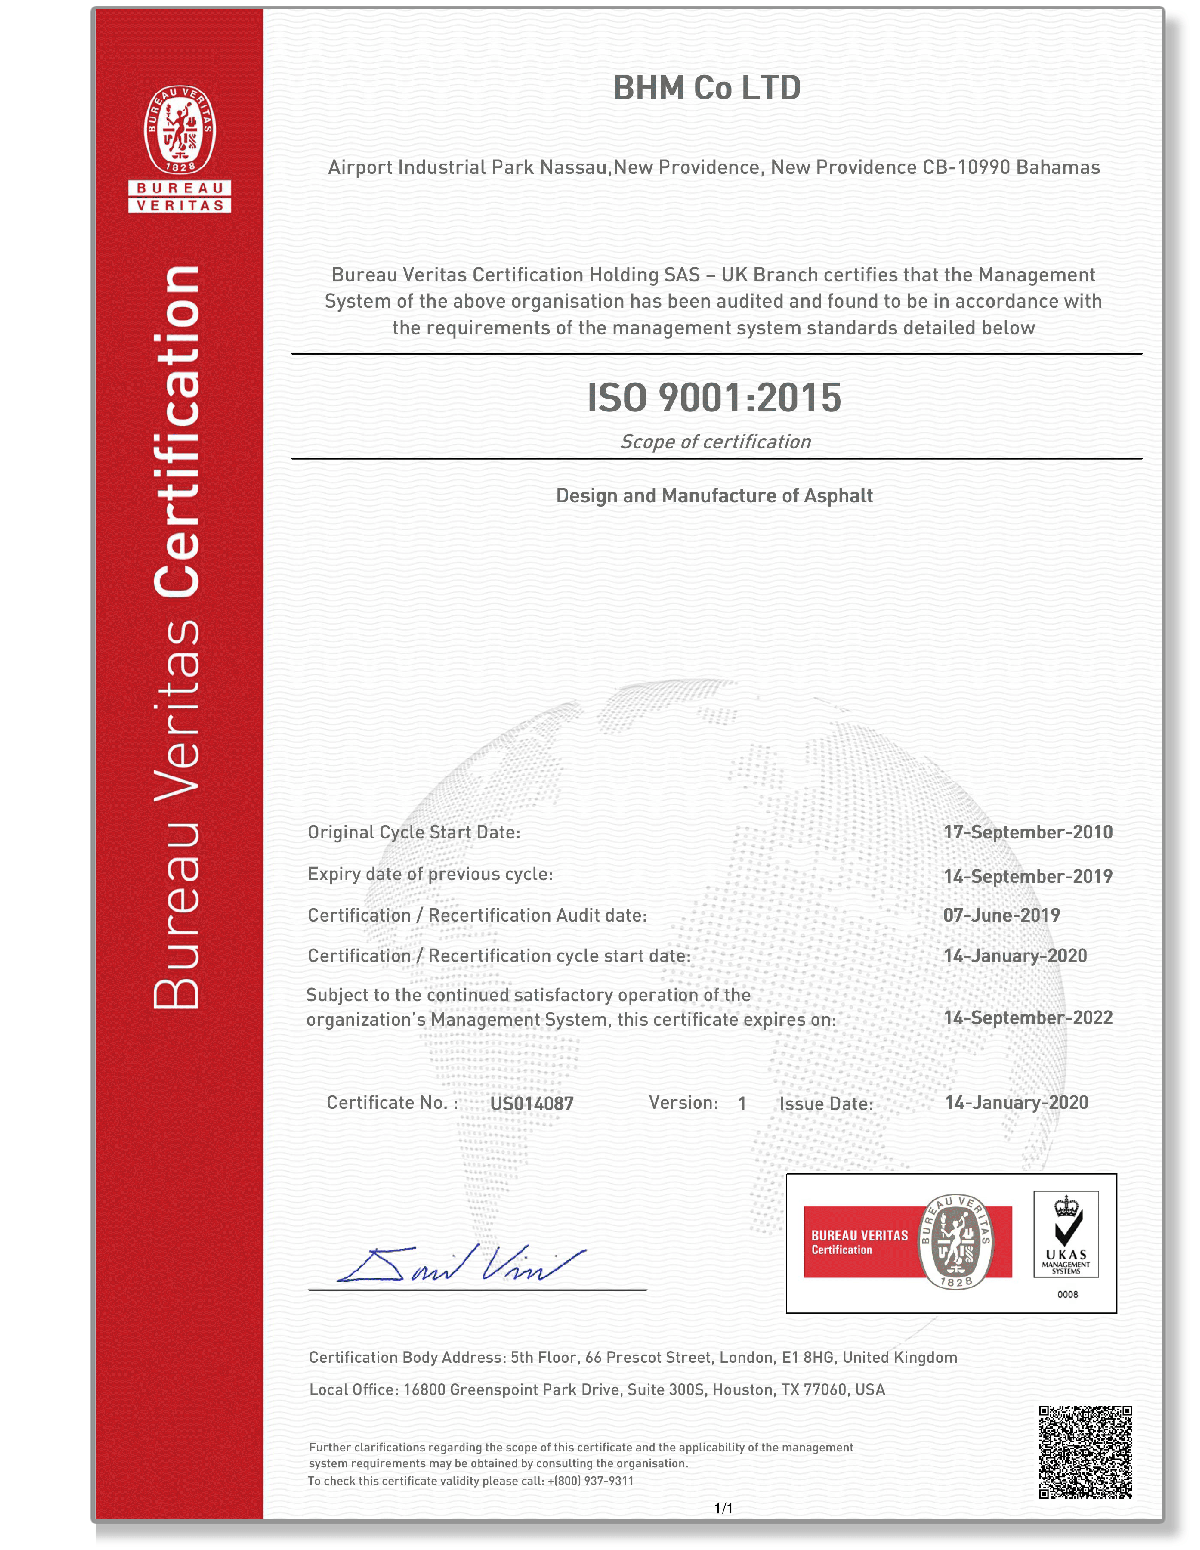 BHM Accreditation ISO9001